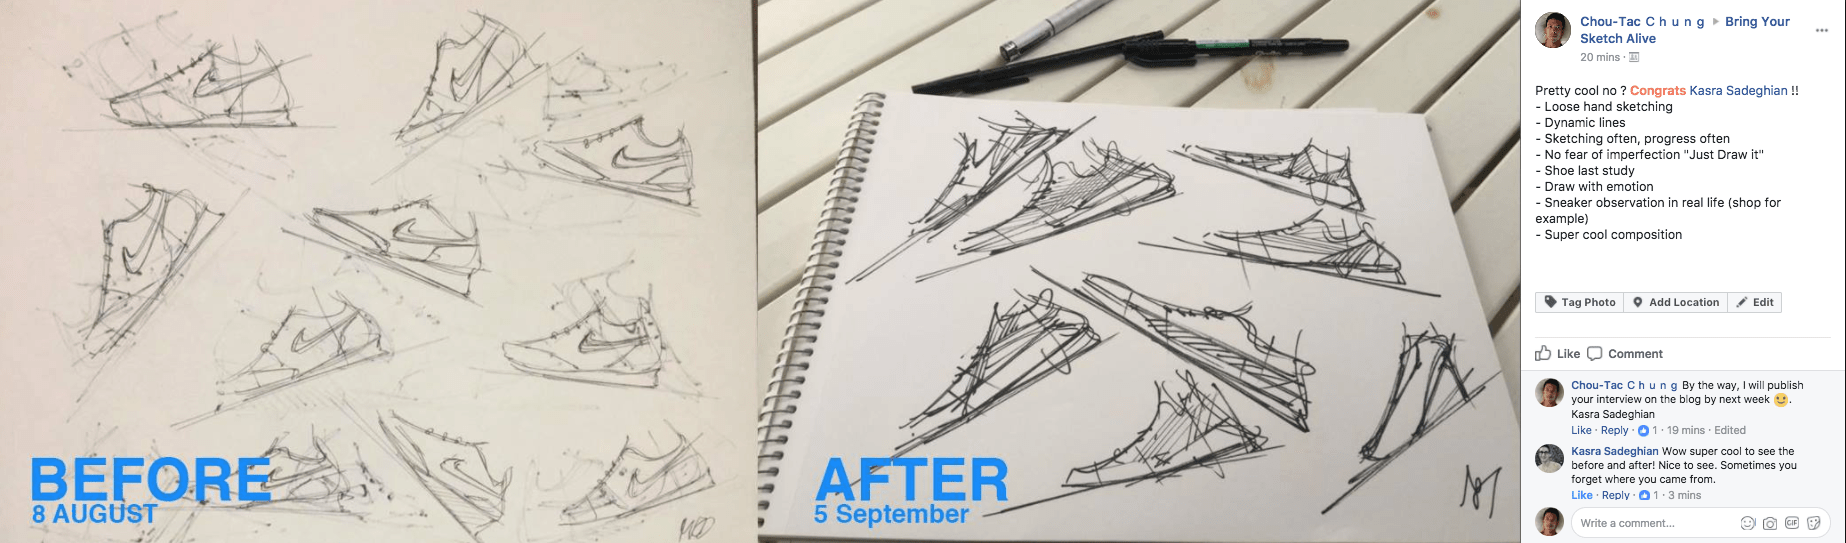 How Kasra did a big jump in his sketching skills in less 1 month